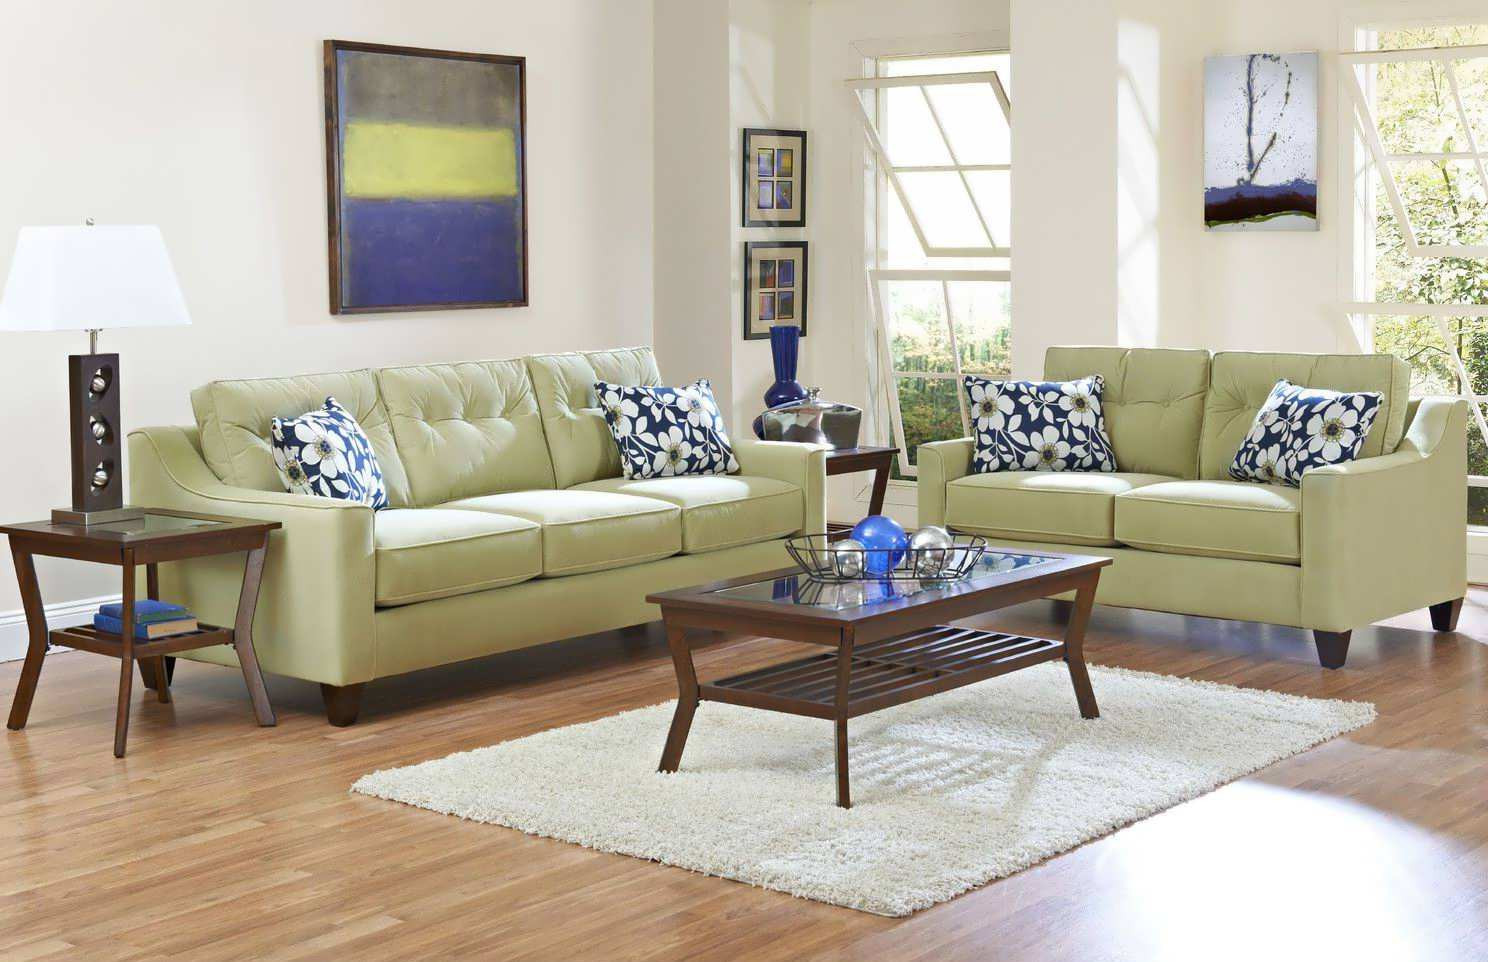 Best ideas about Family Room Couches . Save or Pin Mor Furniture Living Room Sets Now.